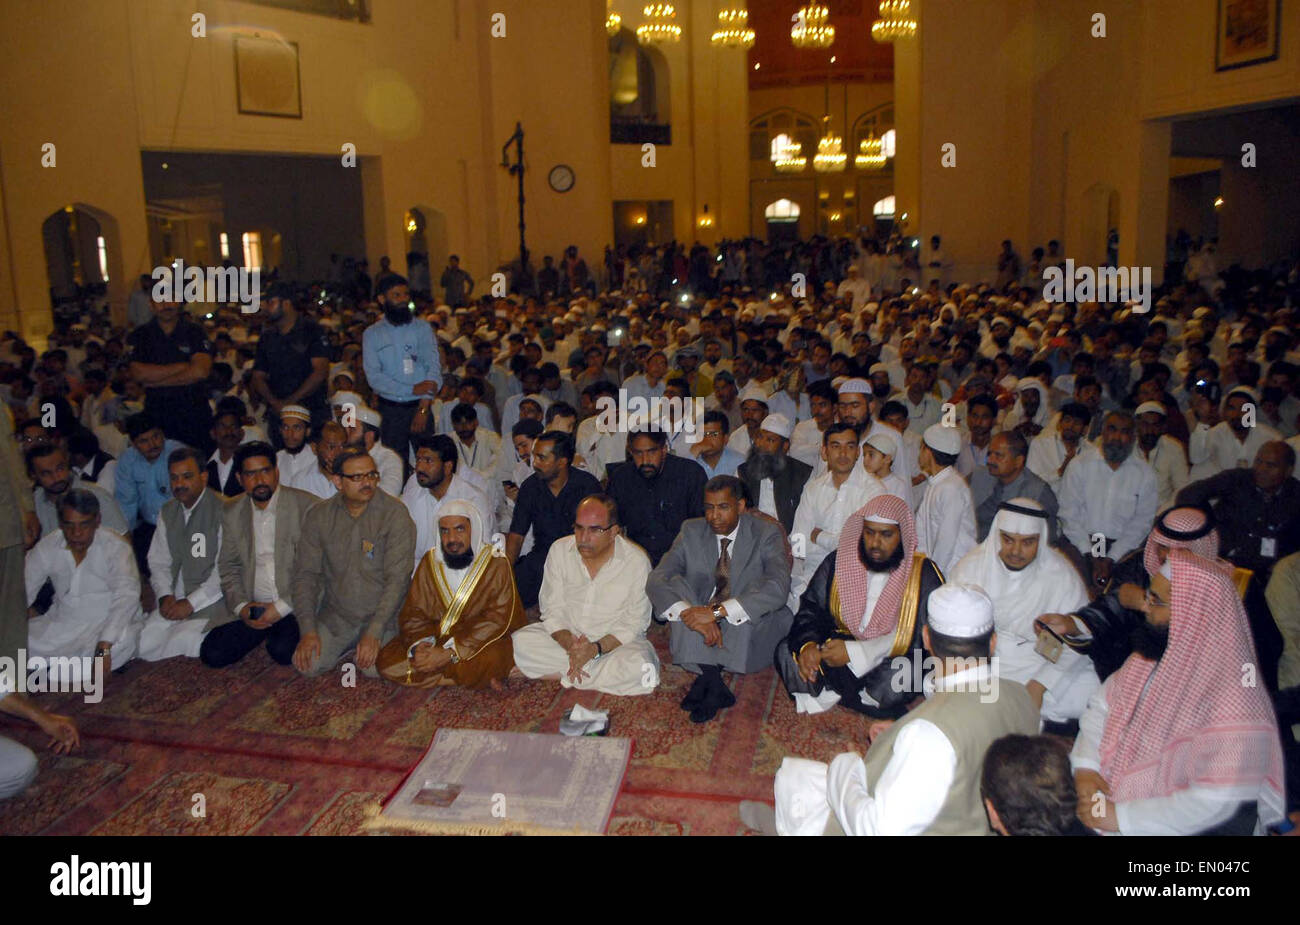 Large numbers of Muslims are listening sermon deliver by